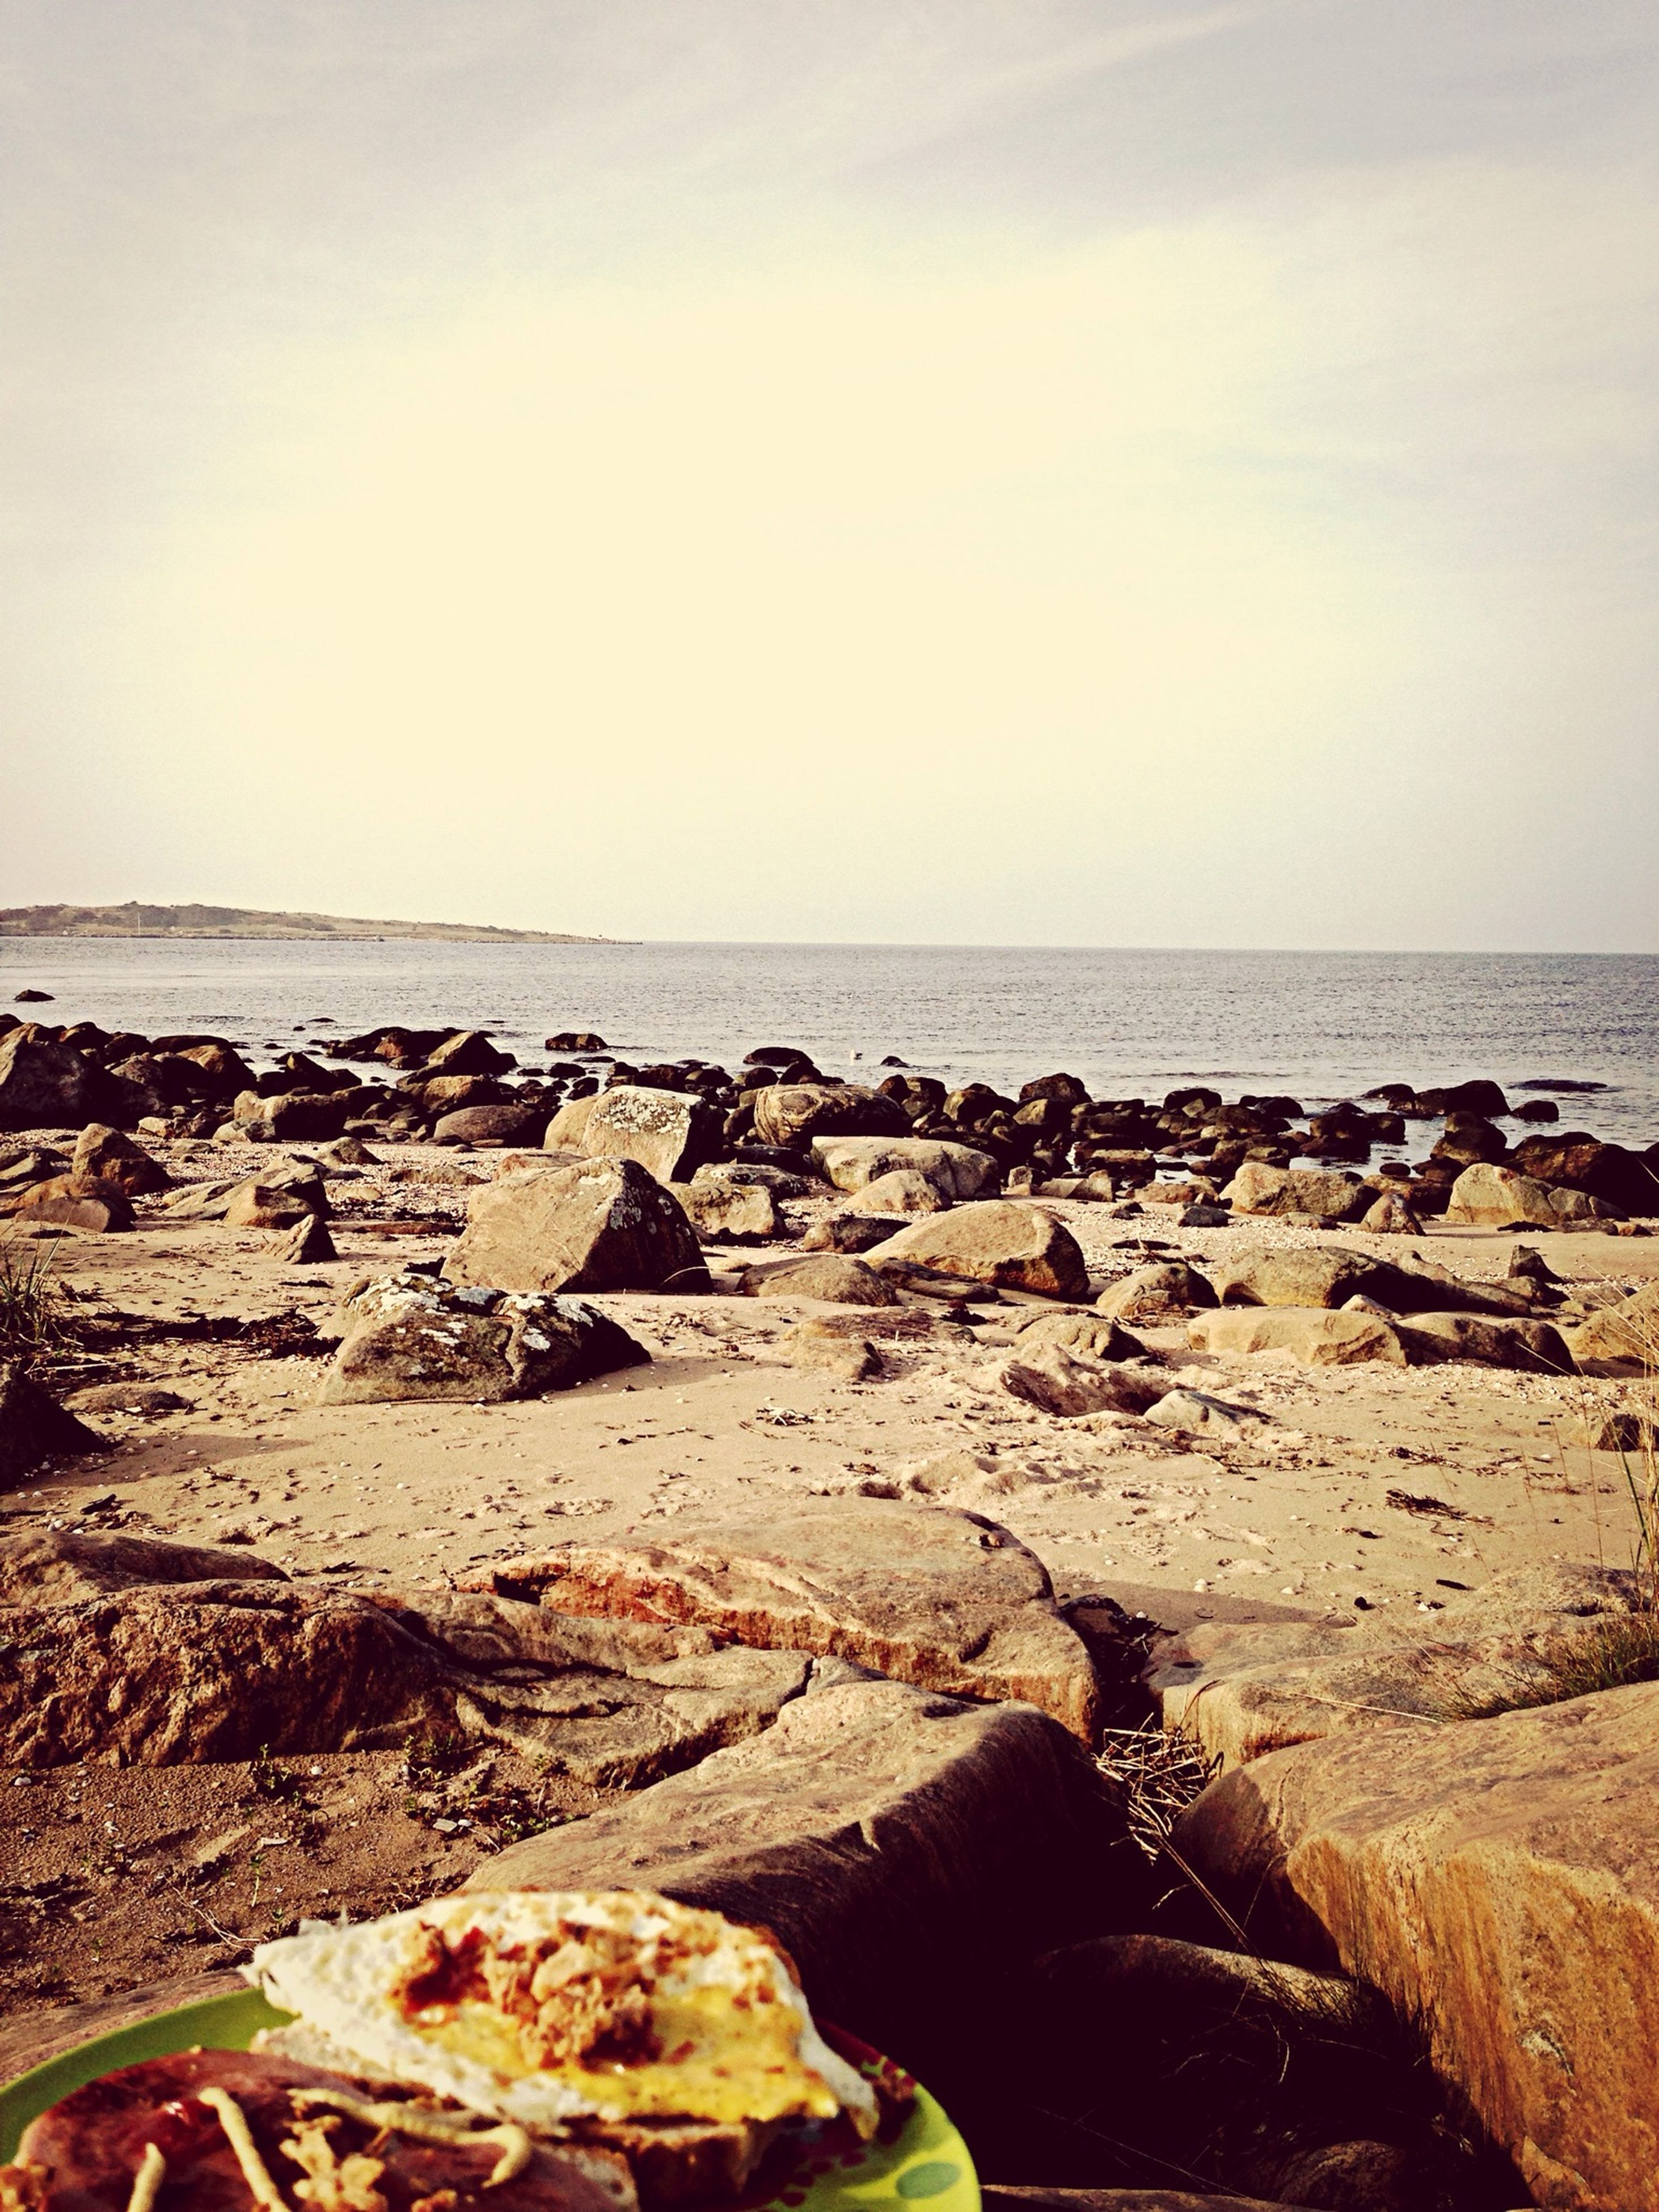 sea, horizon over water, water, beach, shore, scenics, tranquil scene, tranquility, rock - object, beauty in nature, sky, nature, sand, coastline, idyllic, wave, stone - object, rock formation, rock, outdoors